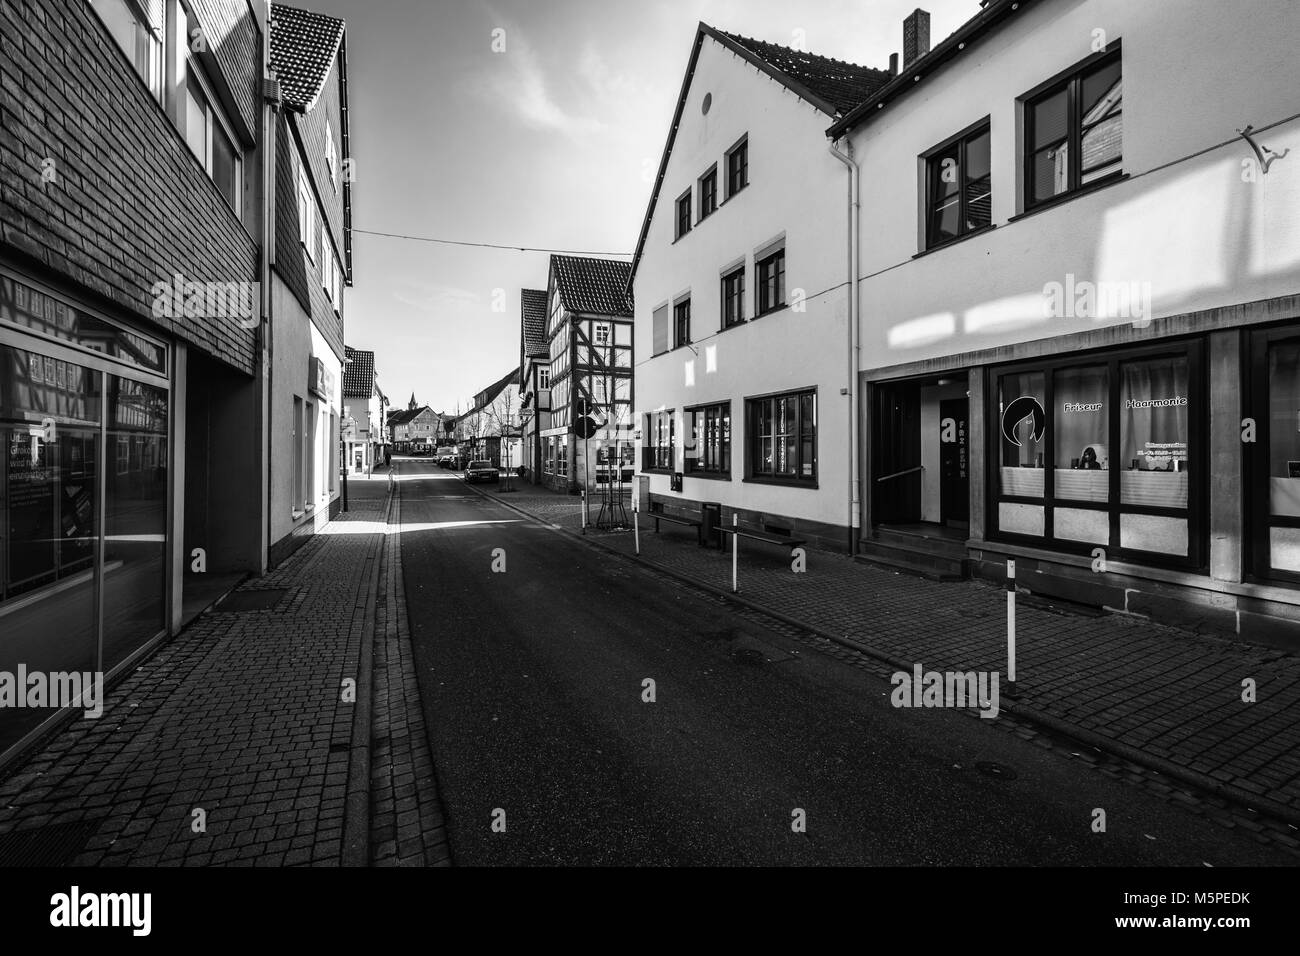 Timber Framing Black and White Stock Photos & Images - Alamy